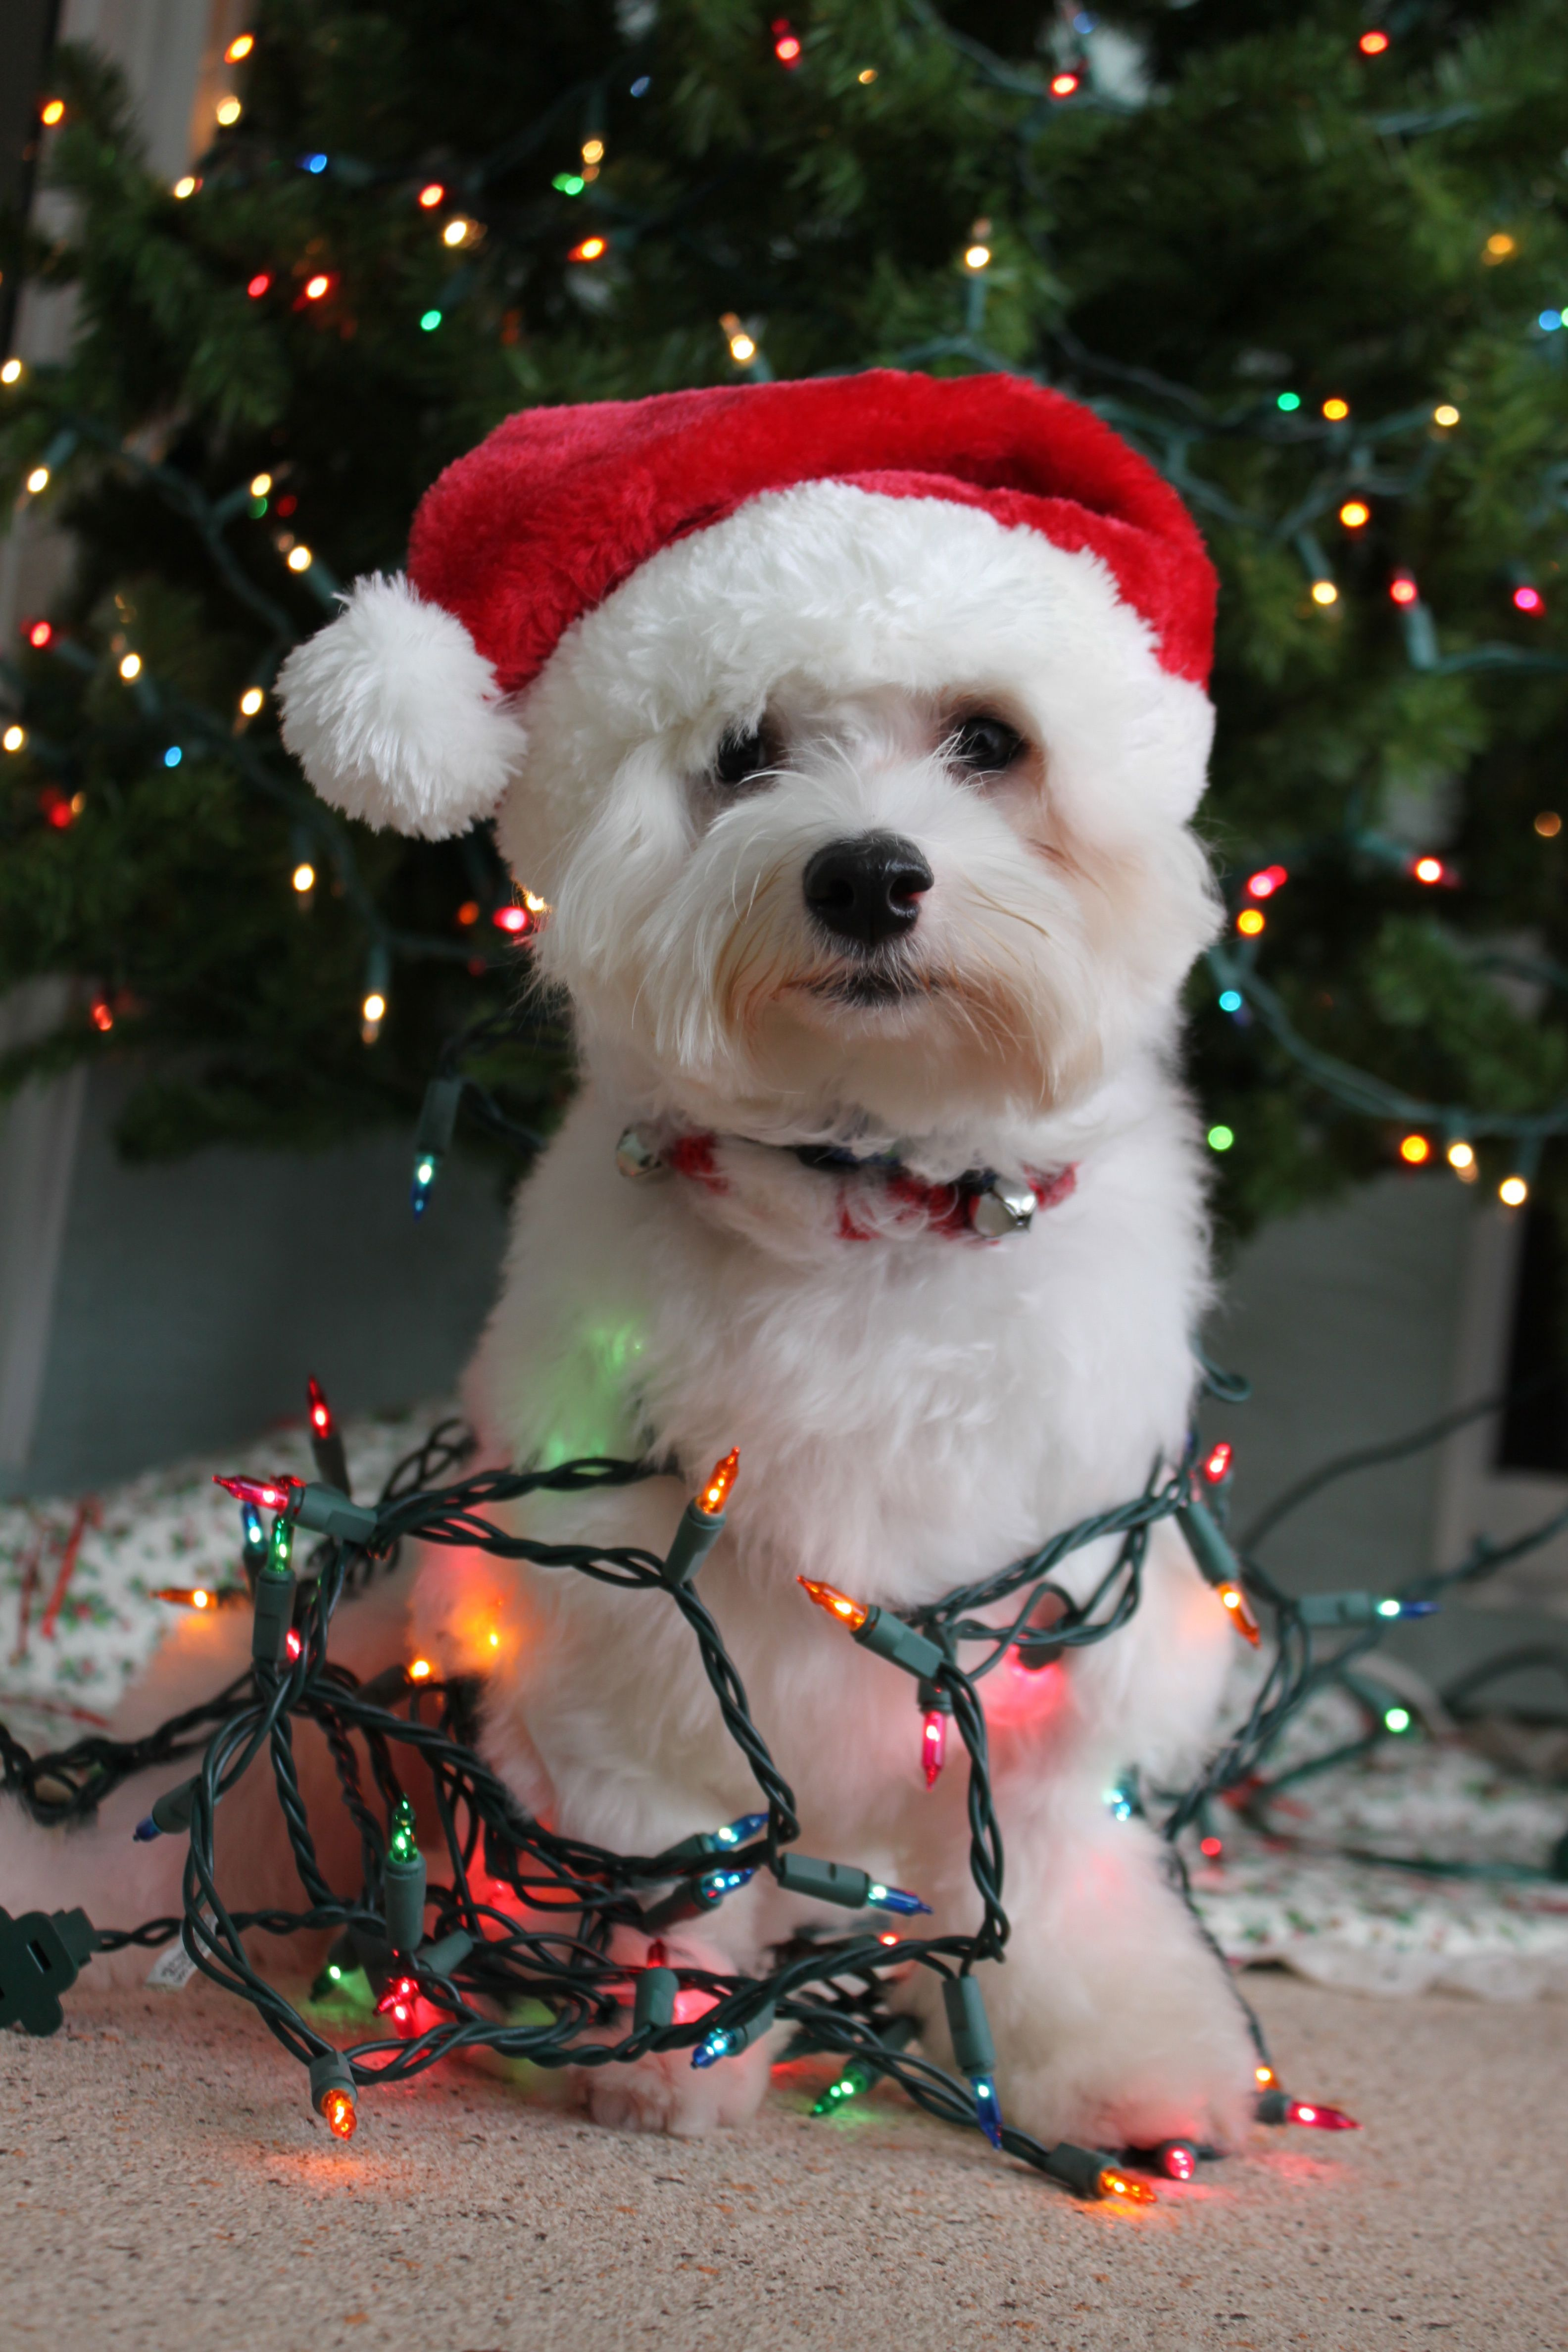 Dog Wrapped in Christmas Lights - With Santa hat!  7c3088d22